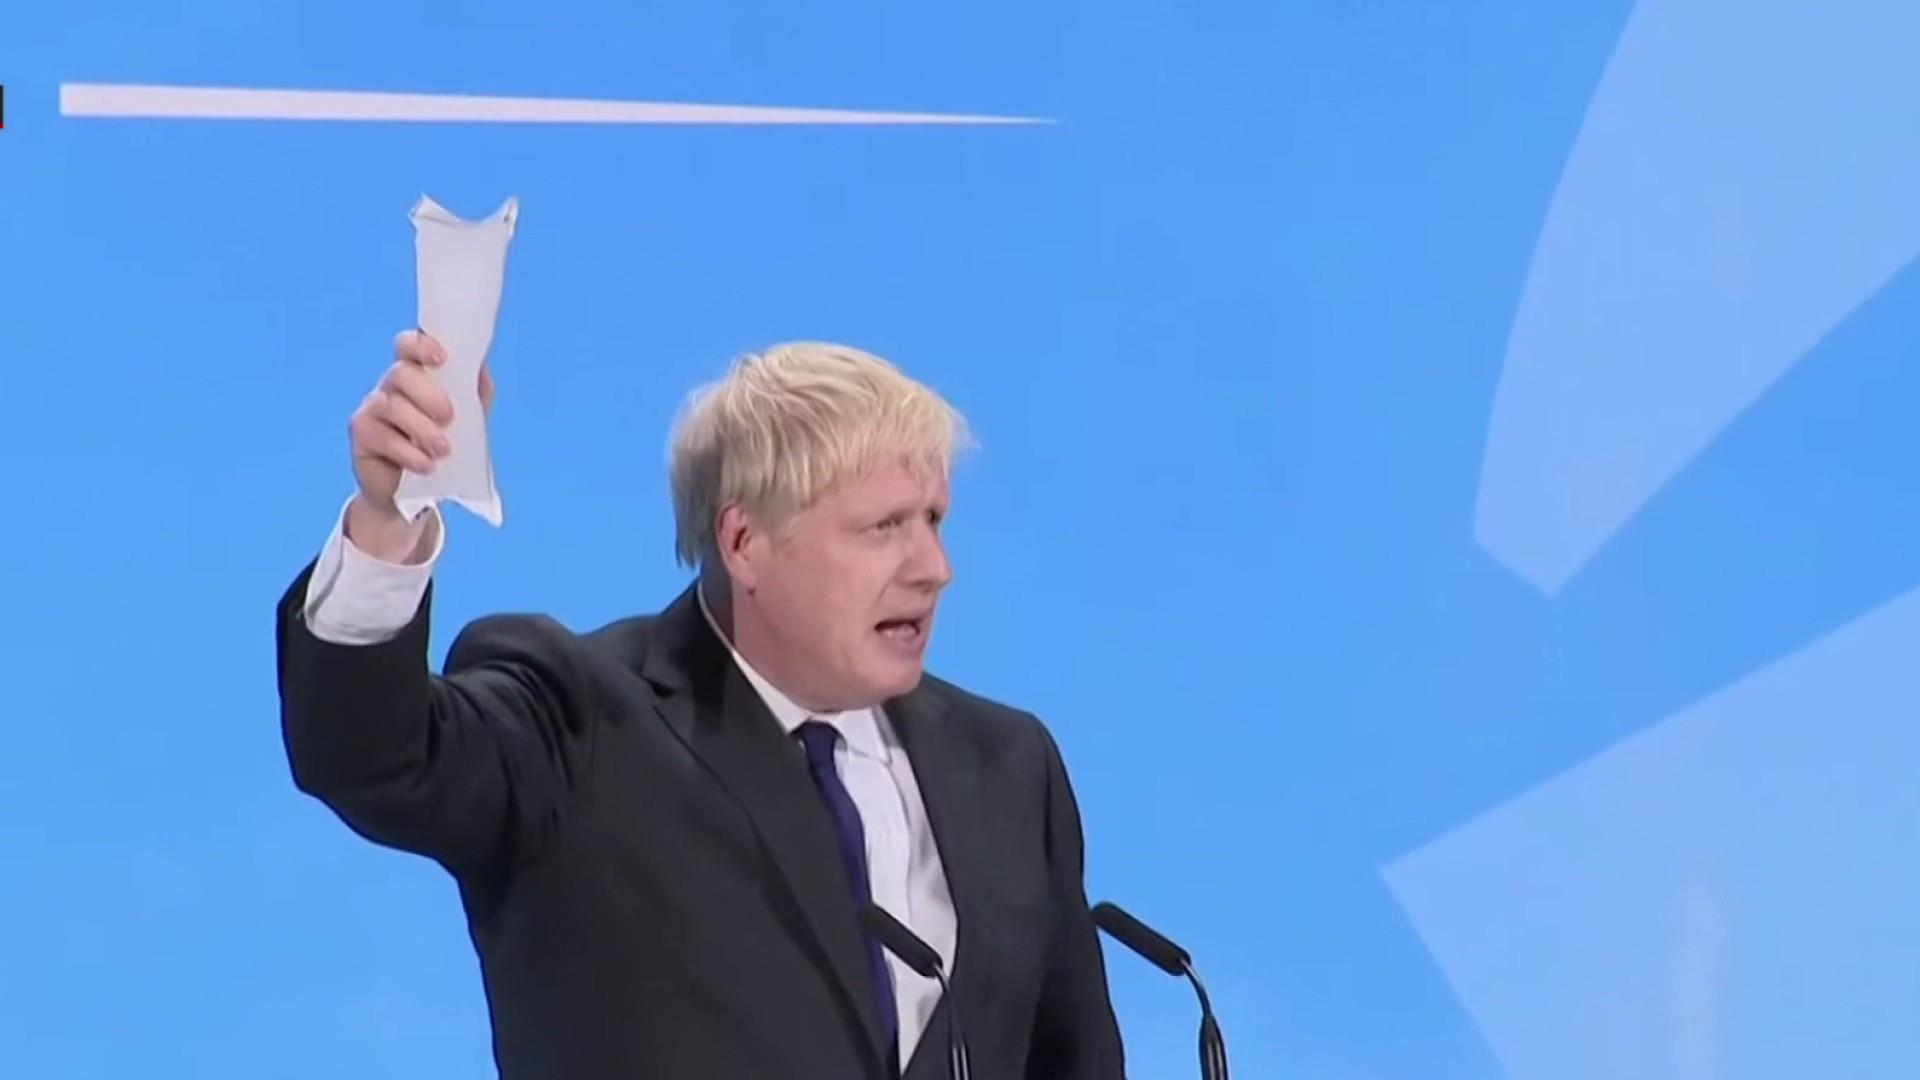 BoJo and his kipper